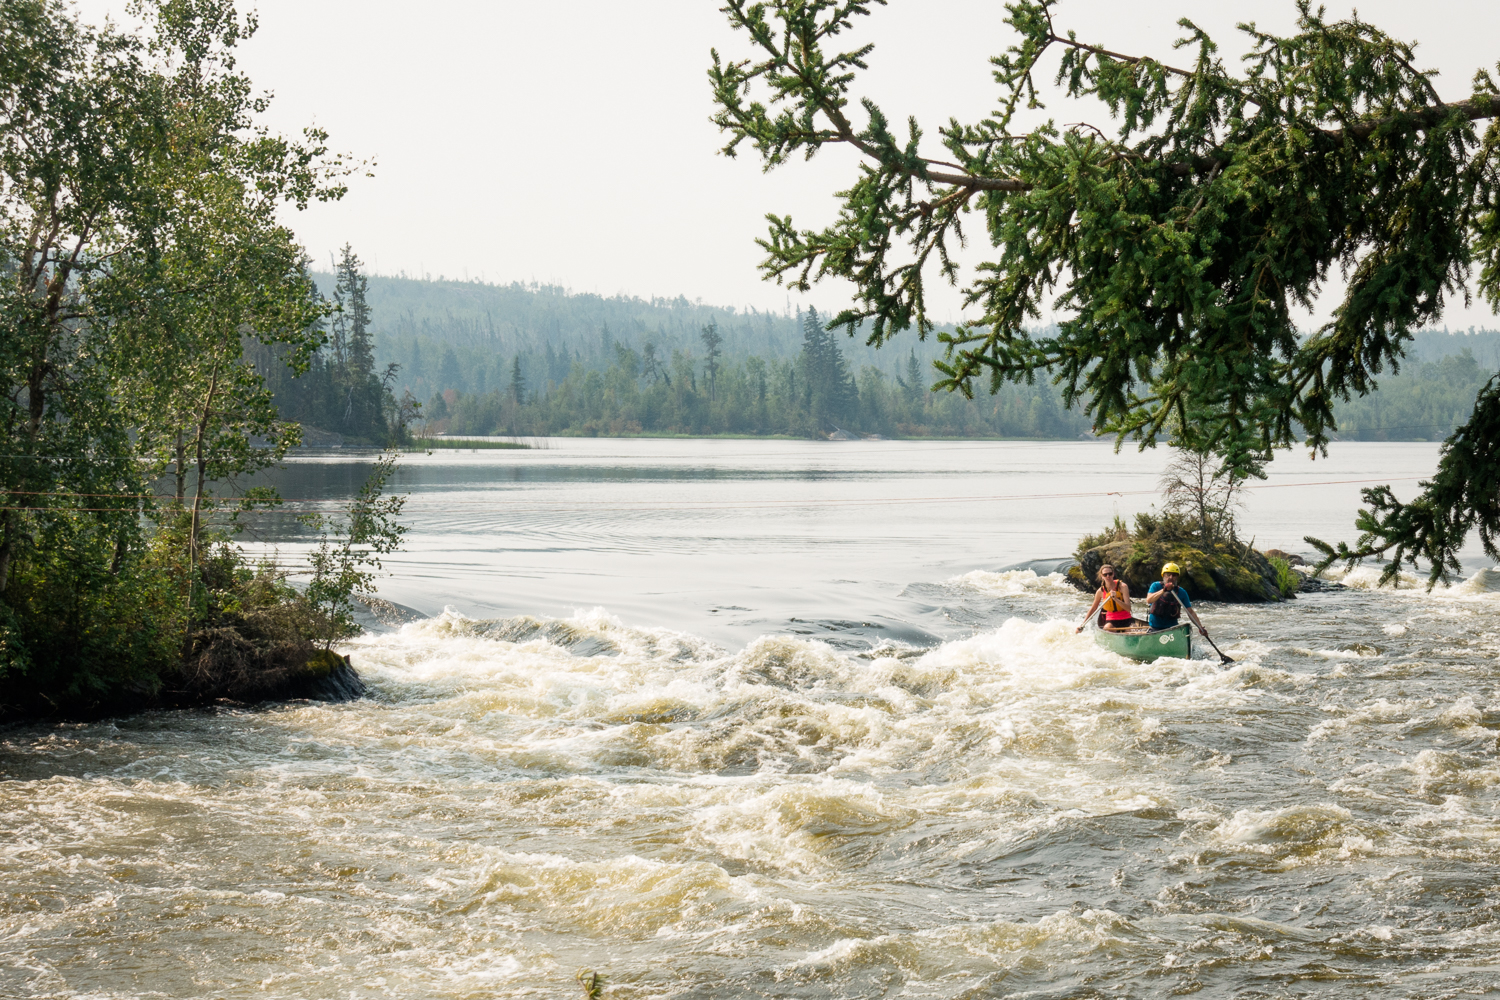 Paddling Mosquito Rapids on The Churchill River with Daryl. - August 15